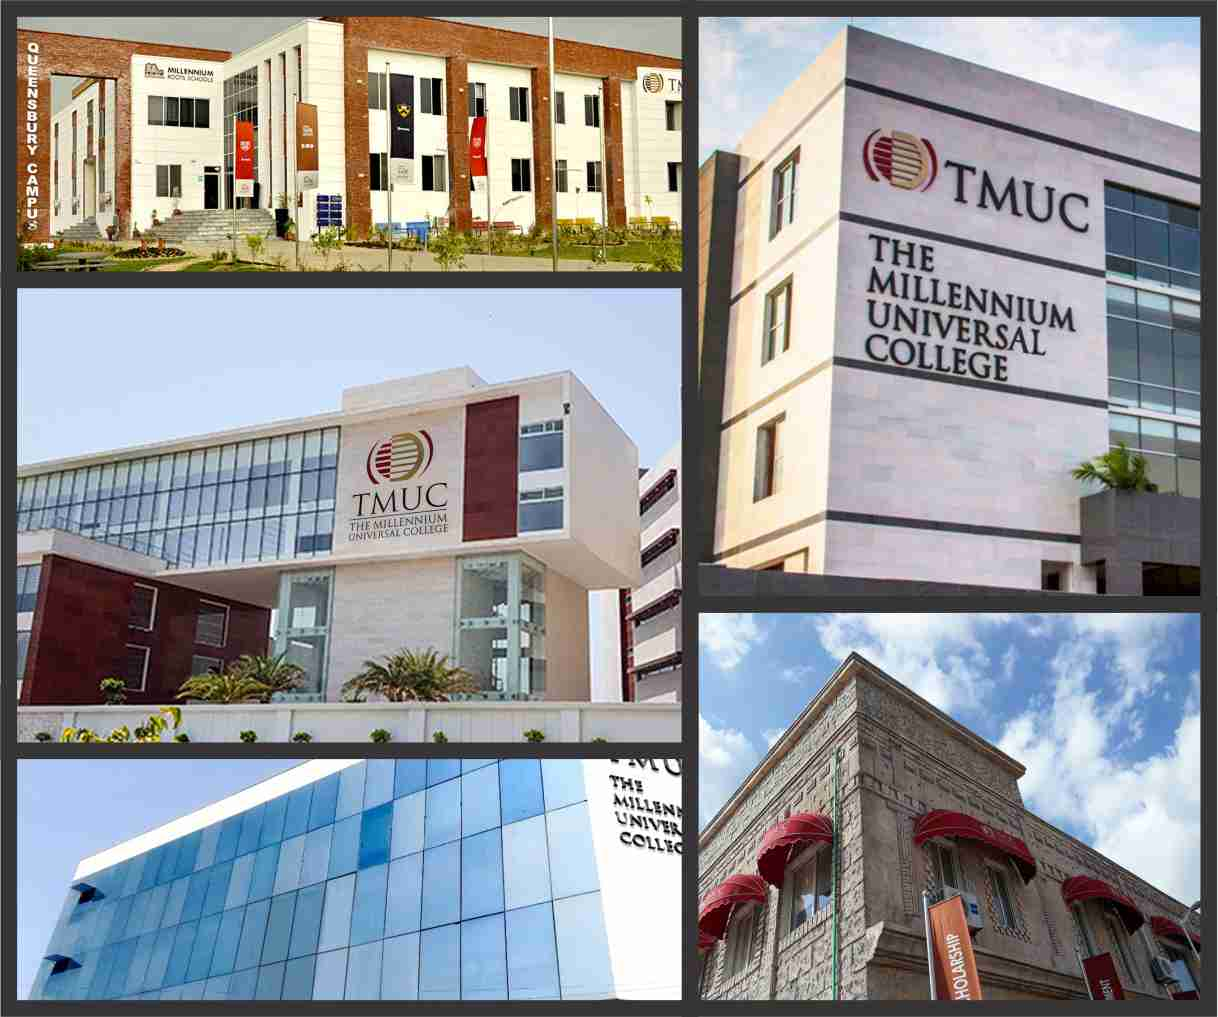 The Millennium Universal College Top International University Pakistan